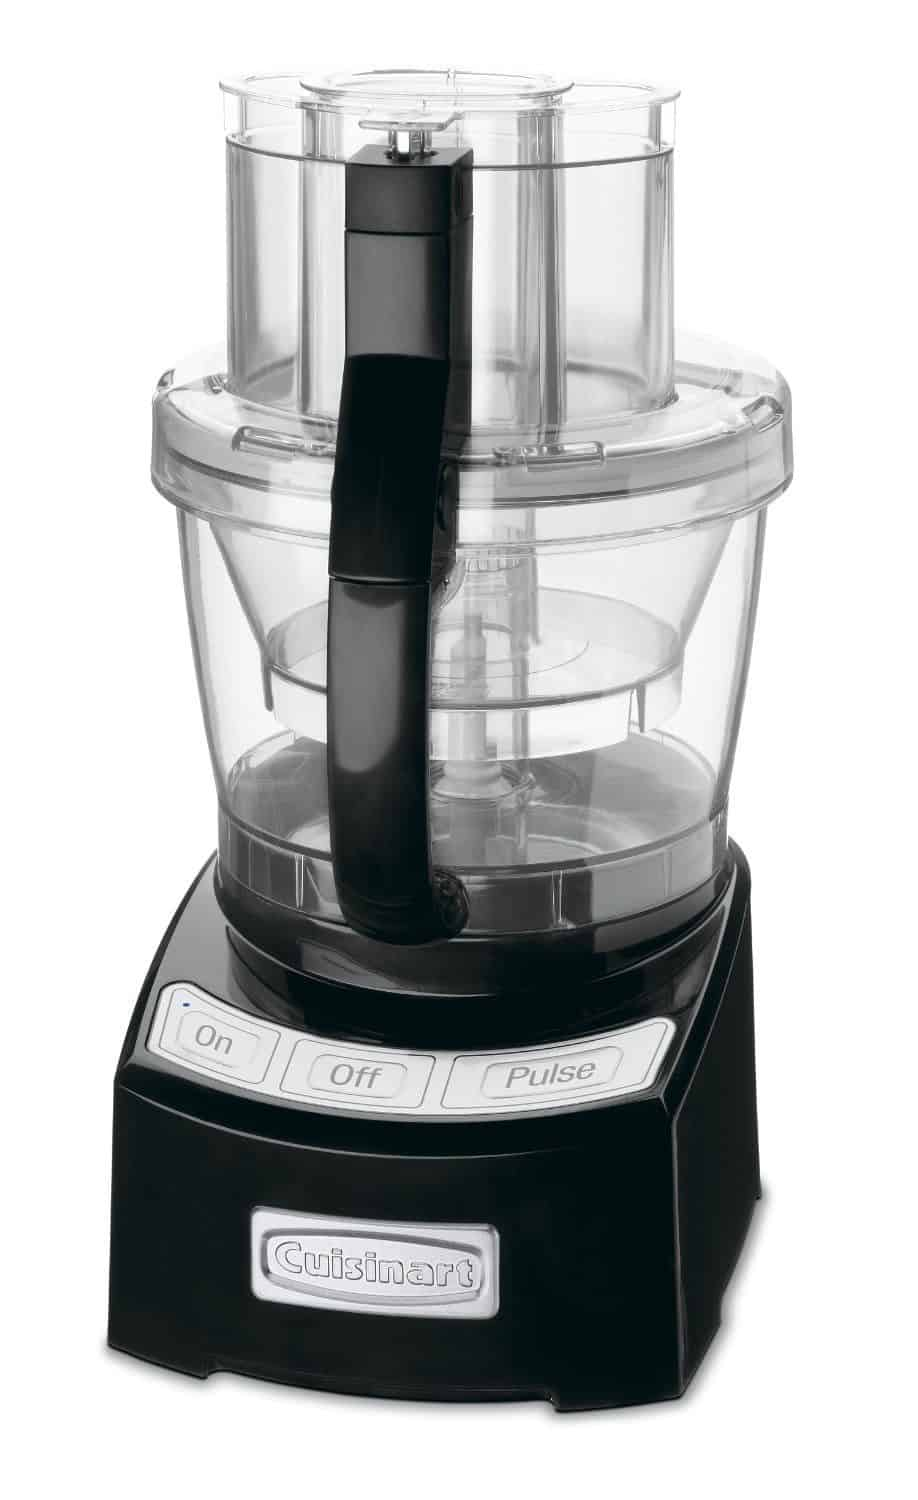 Cuisinart FP-12BK Elite Collection 12-Cup Food Processor review